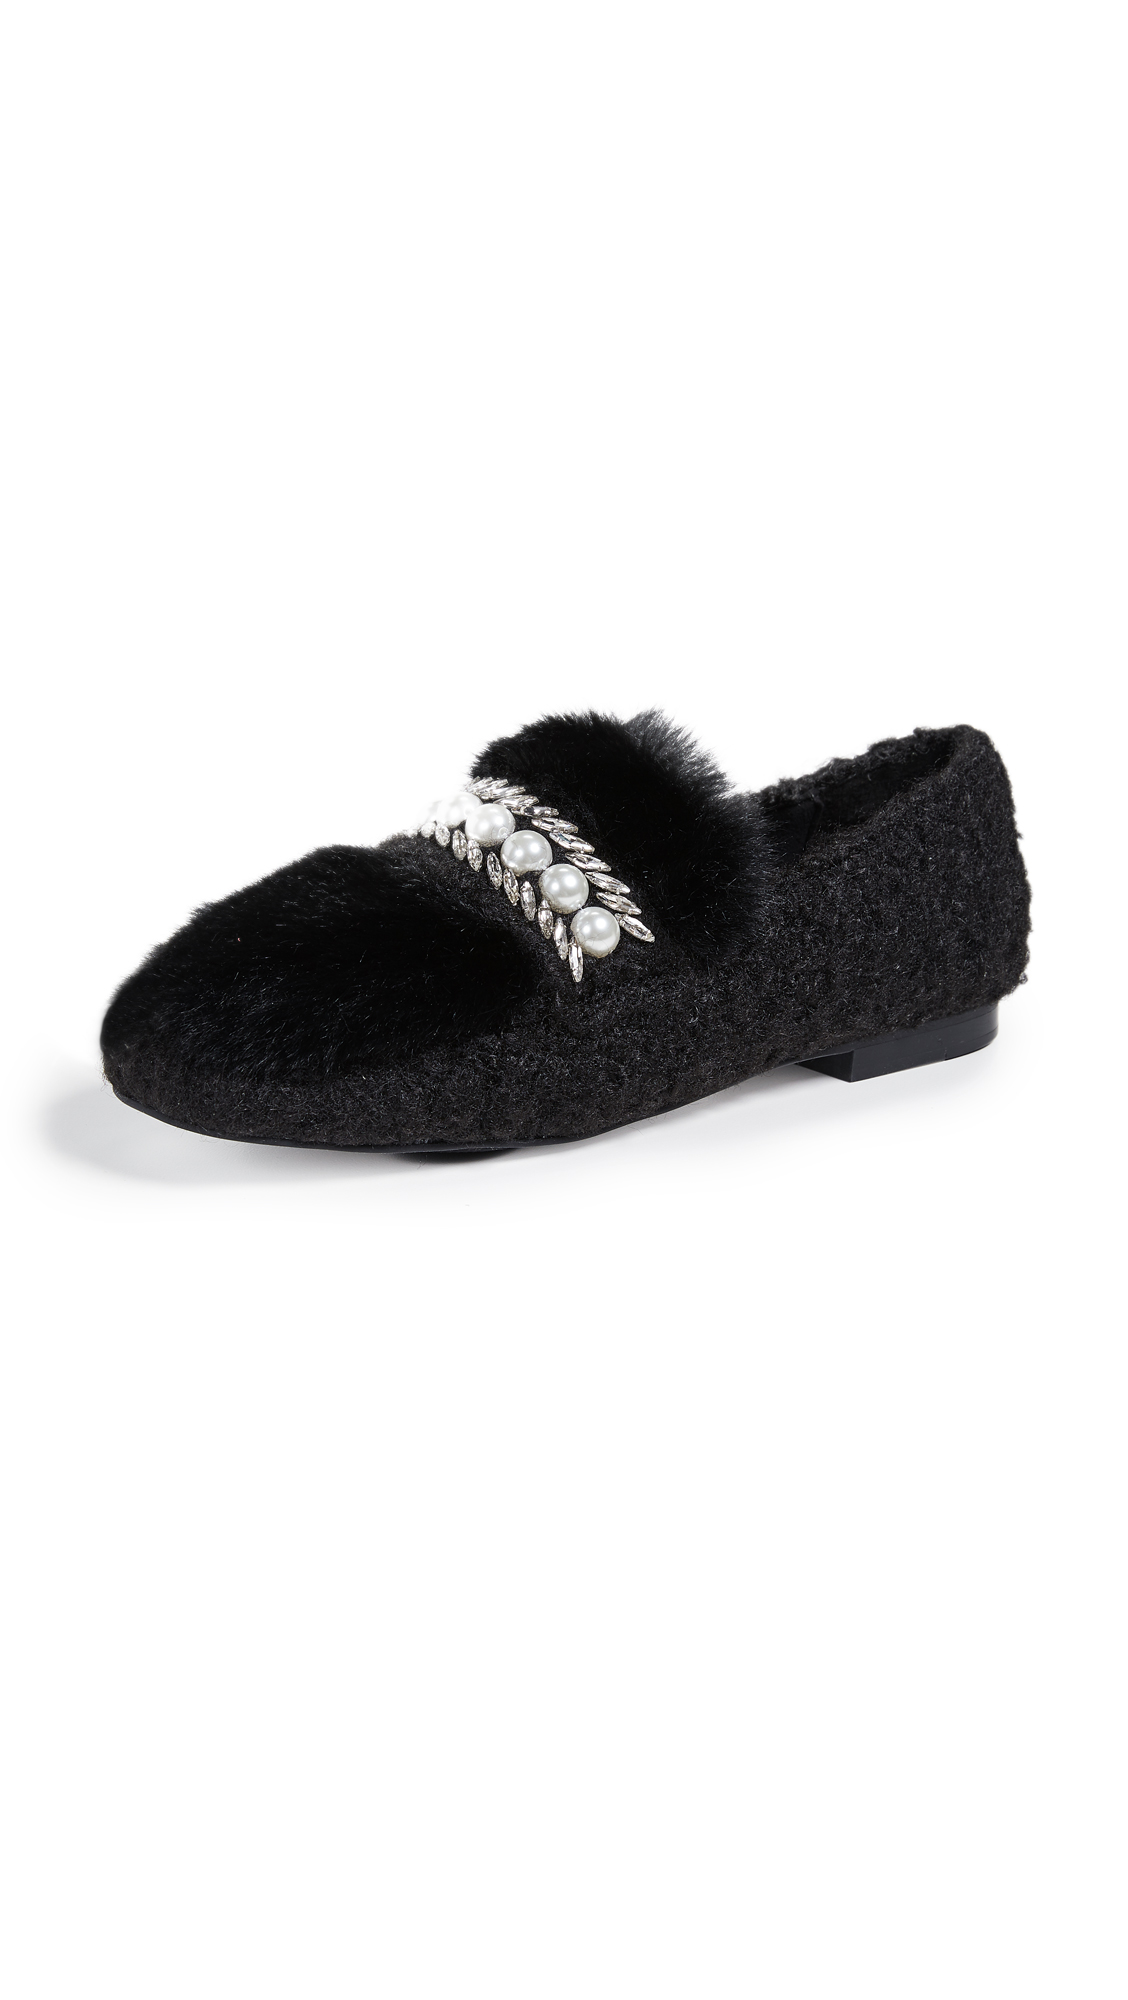 Suecomma Bonnie Embellished Faux Fur Loafers - Black/Black